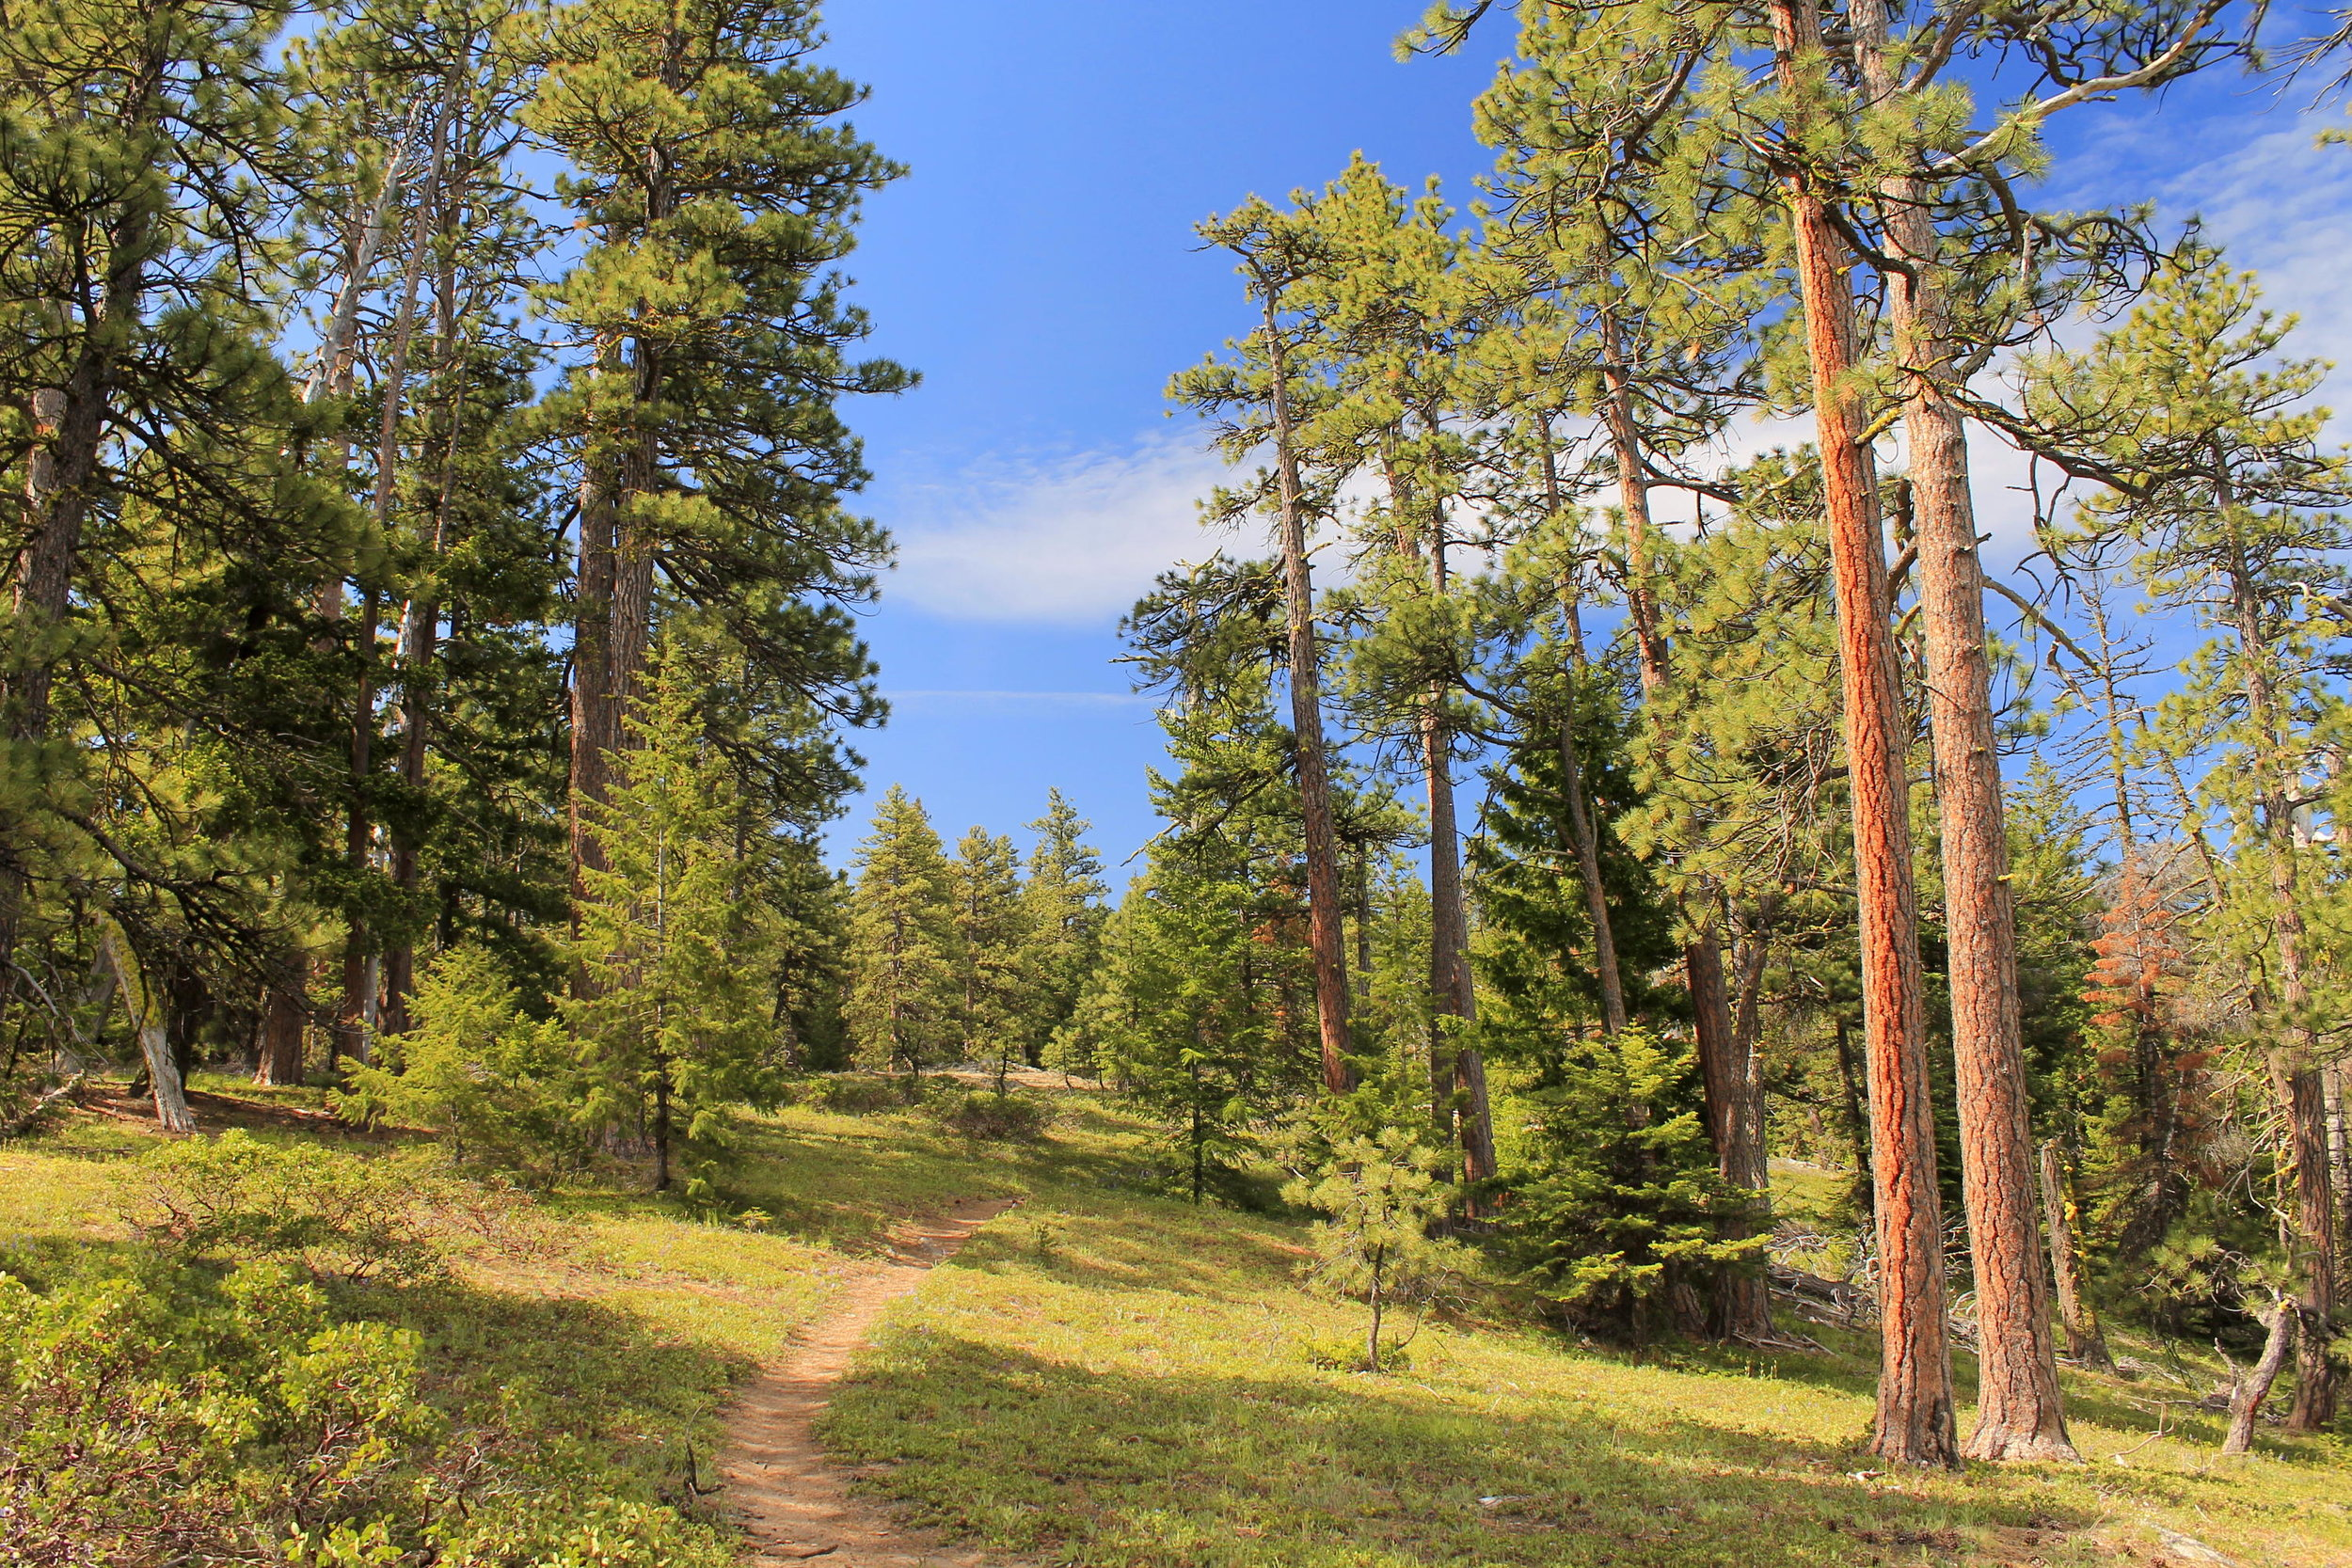 Ponderosa pines line the Fifteenmile Creek Trail.